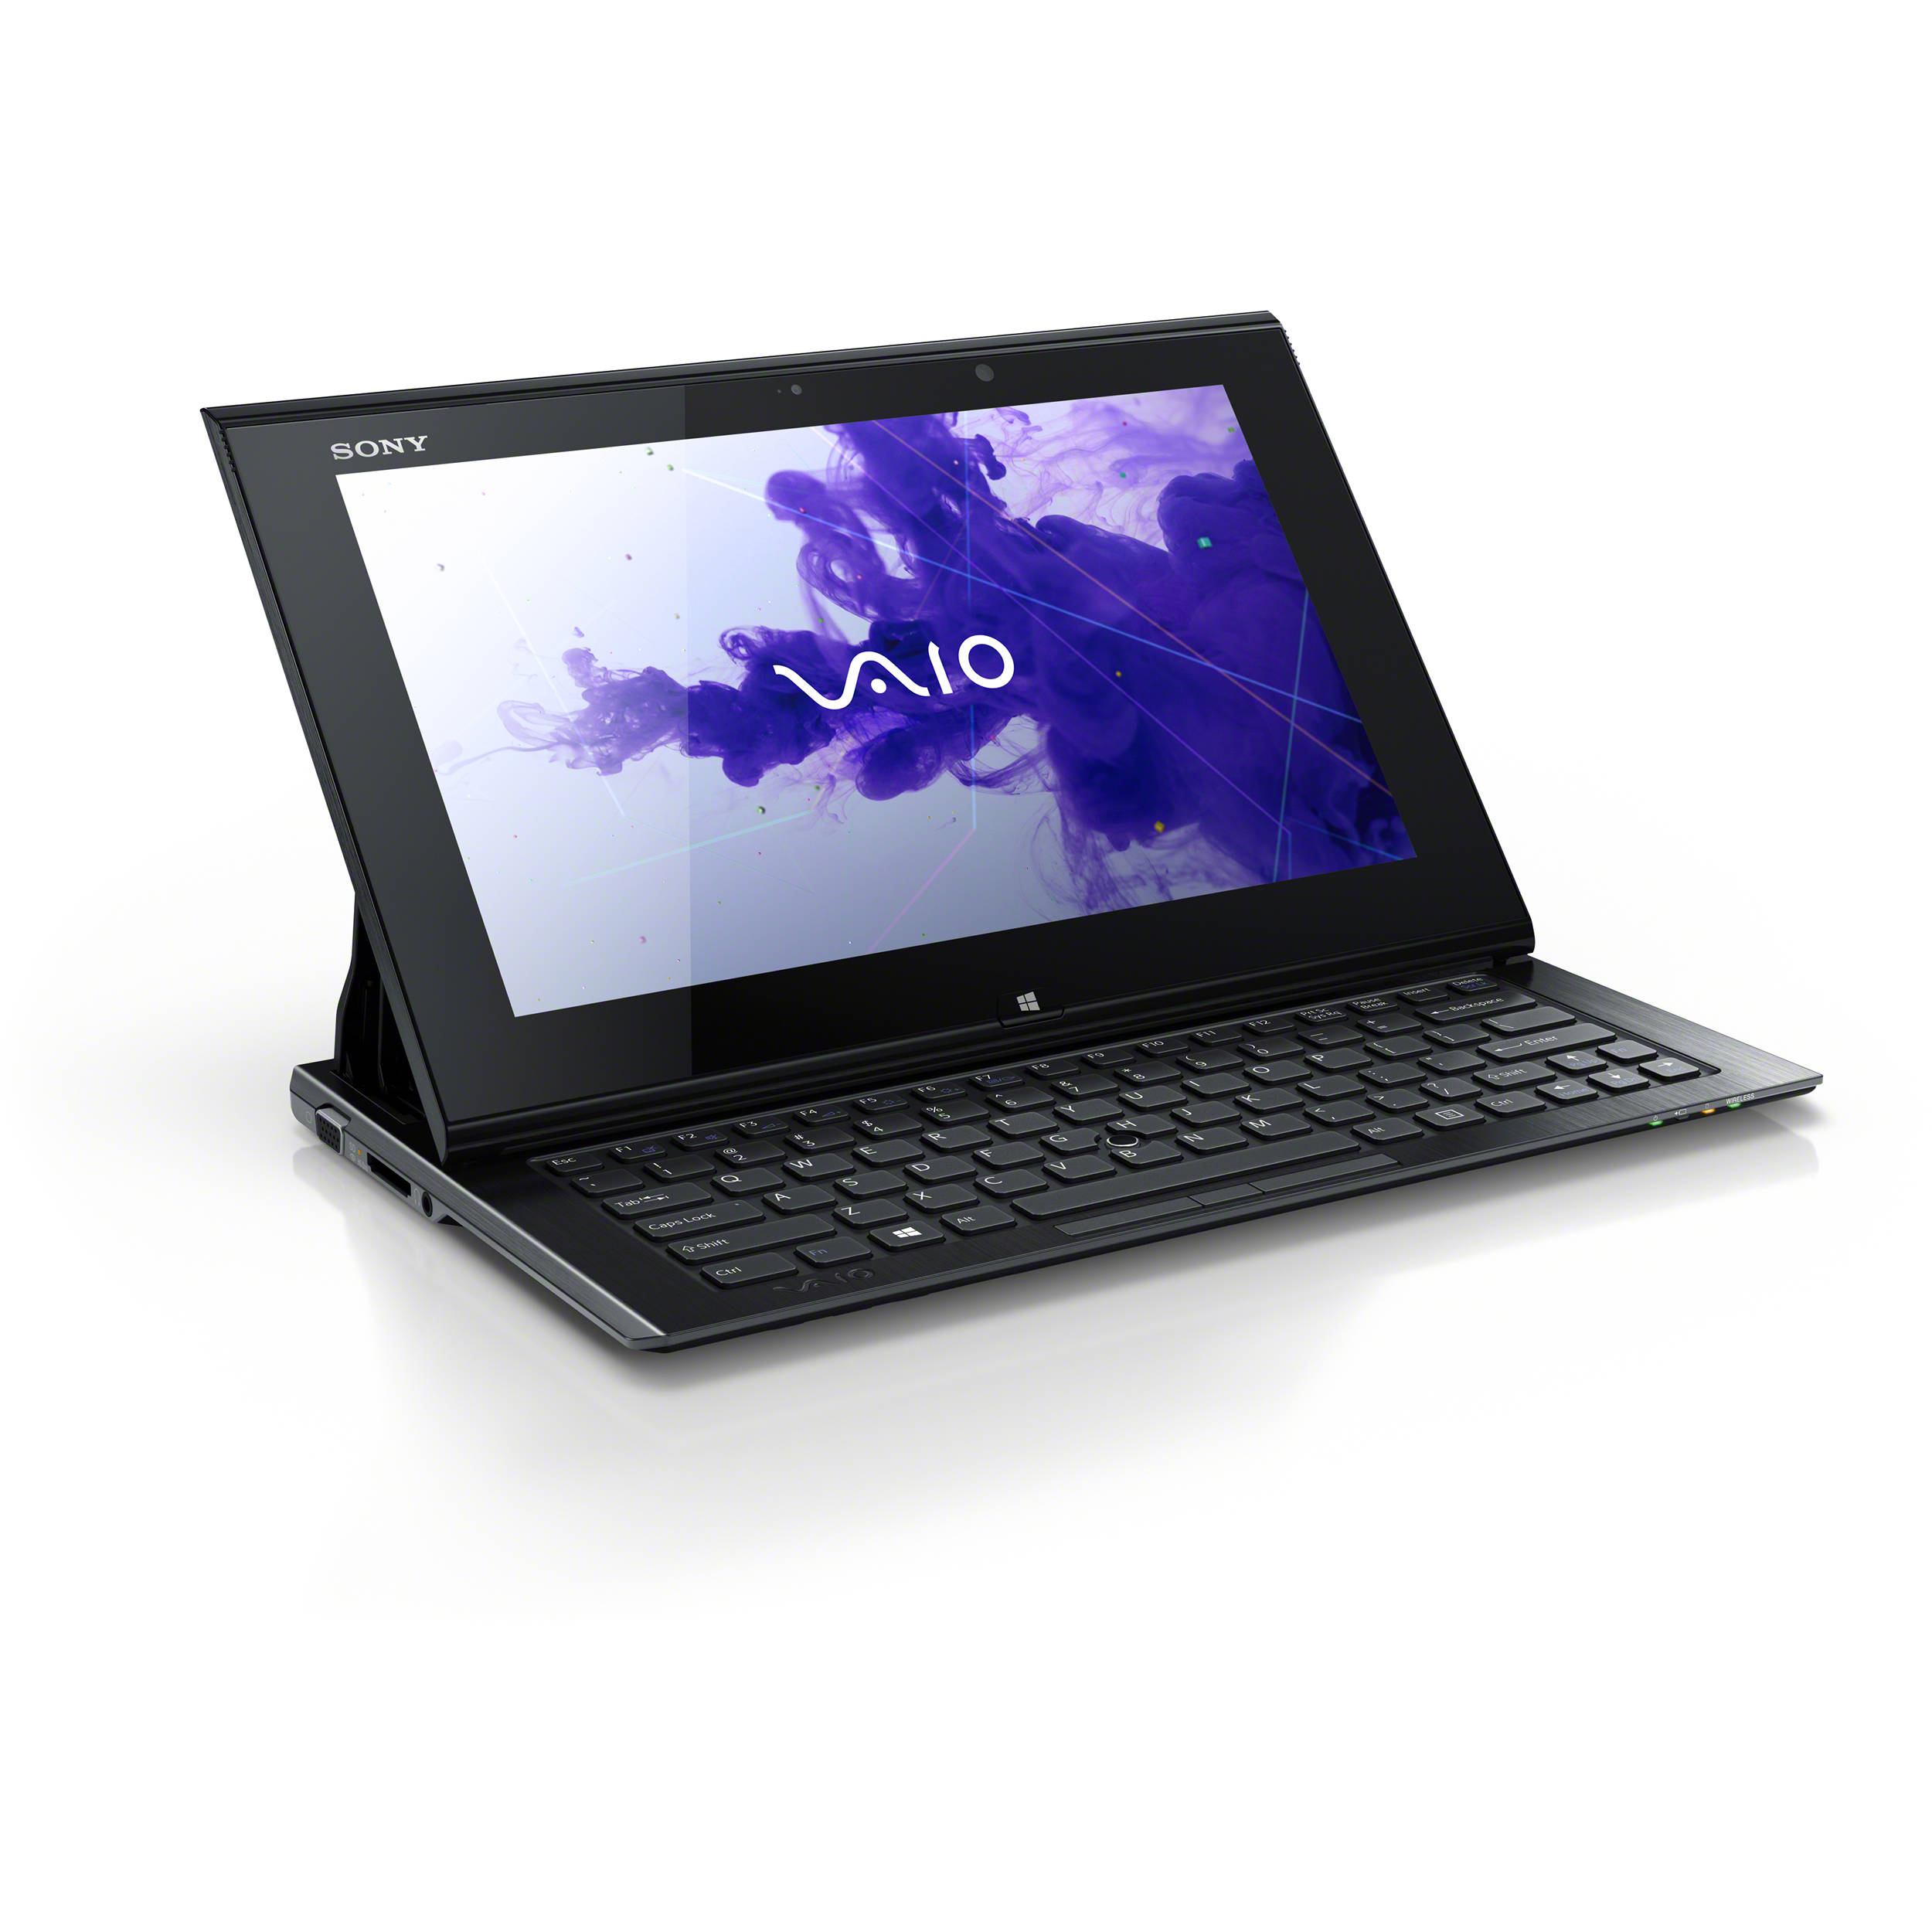 Sony Vaio VPCSA4DFX Infineon Drivers for Windows Download